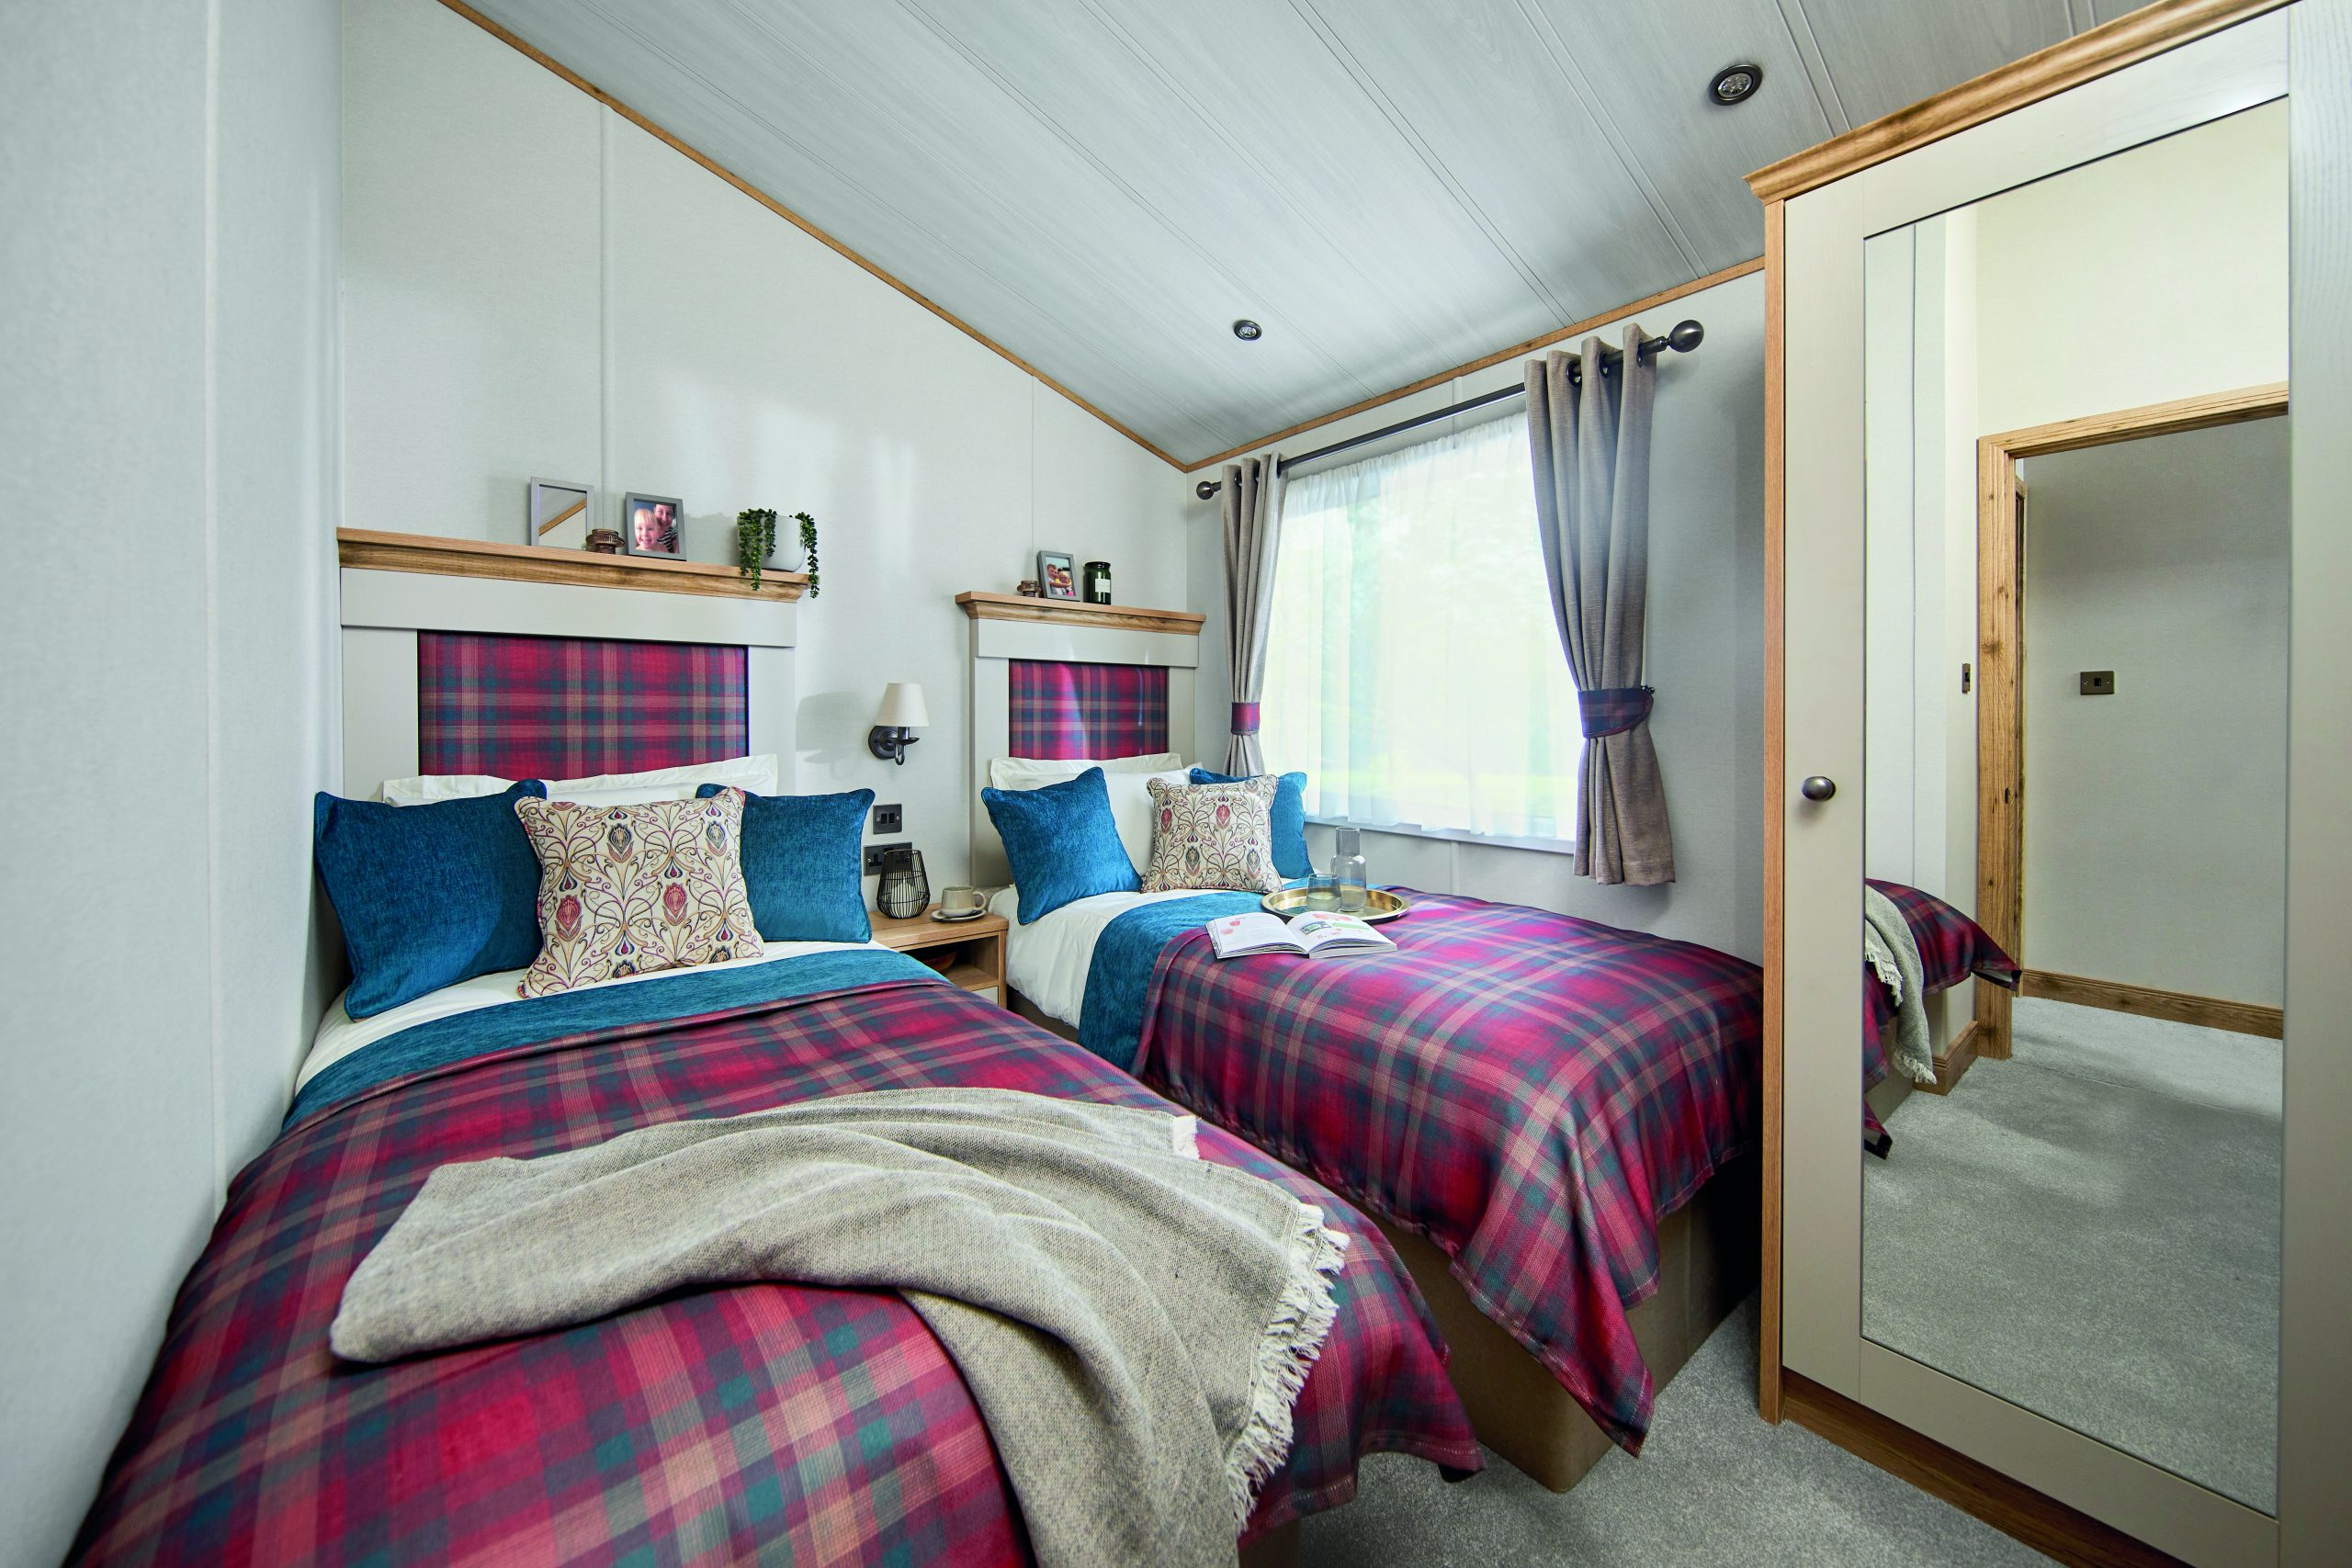 lodge holidays near lincoln, holiday cottages lincolnshire, glamping pods lincolnshire